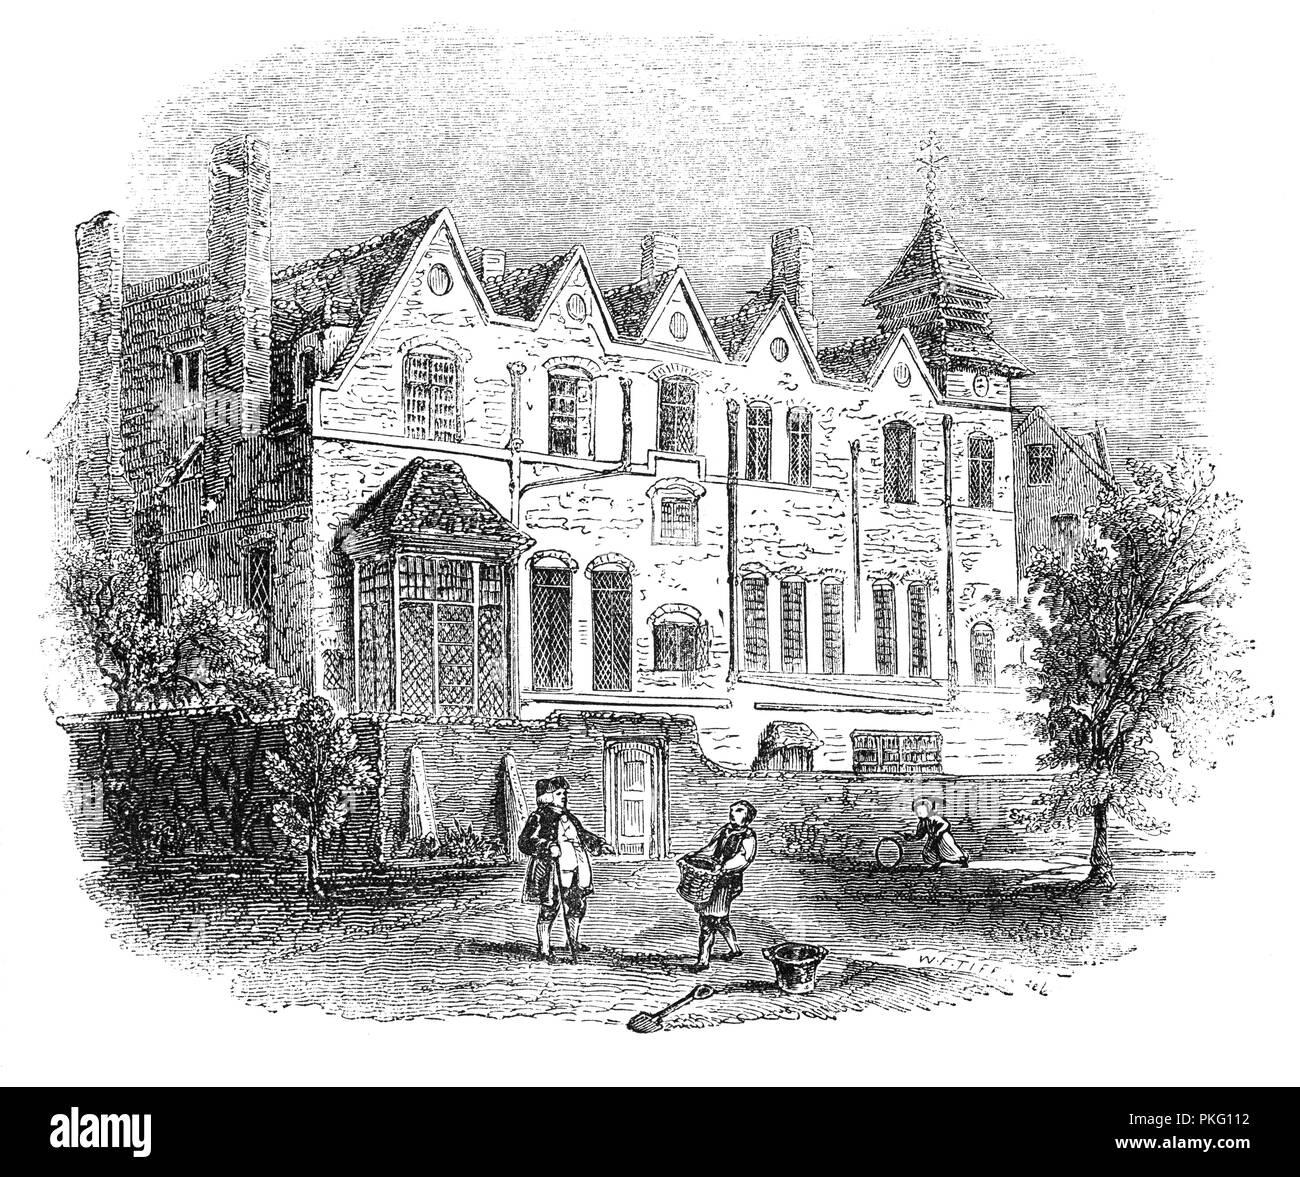 The old manor house around in the mid-17th century, when Marylebone was a village separated from London by fields and market gardens. It was converted into a hunting lodge by Henry VIII and was later used as a boarding school, eventually being demolished in 1791. - Stock Image